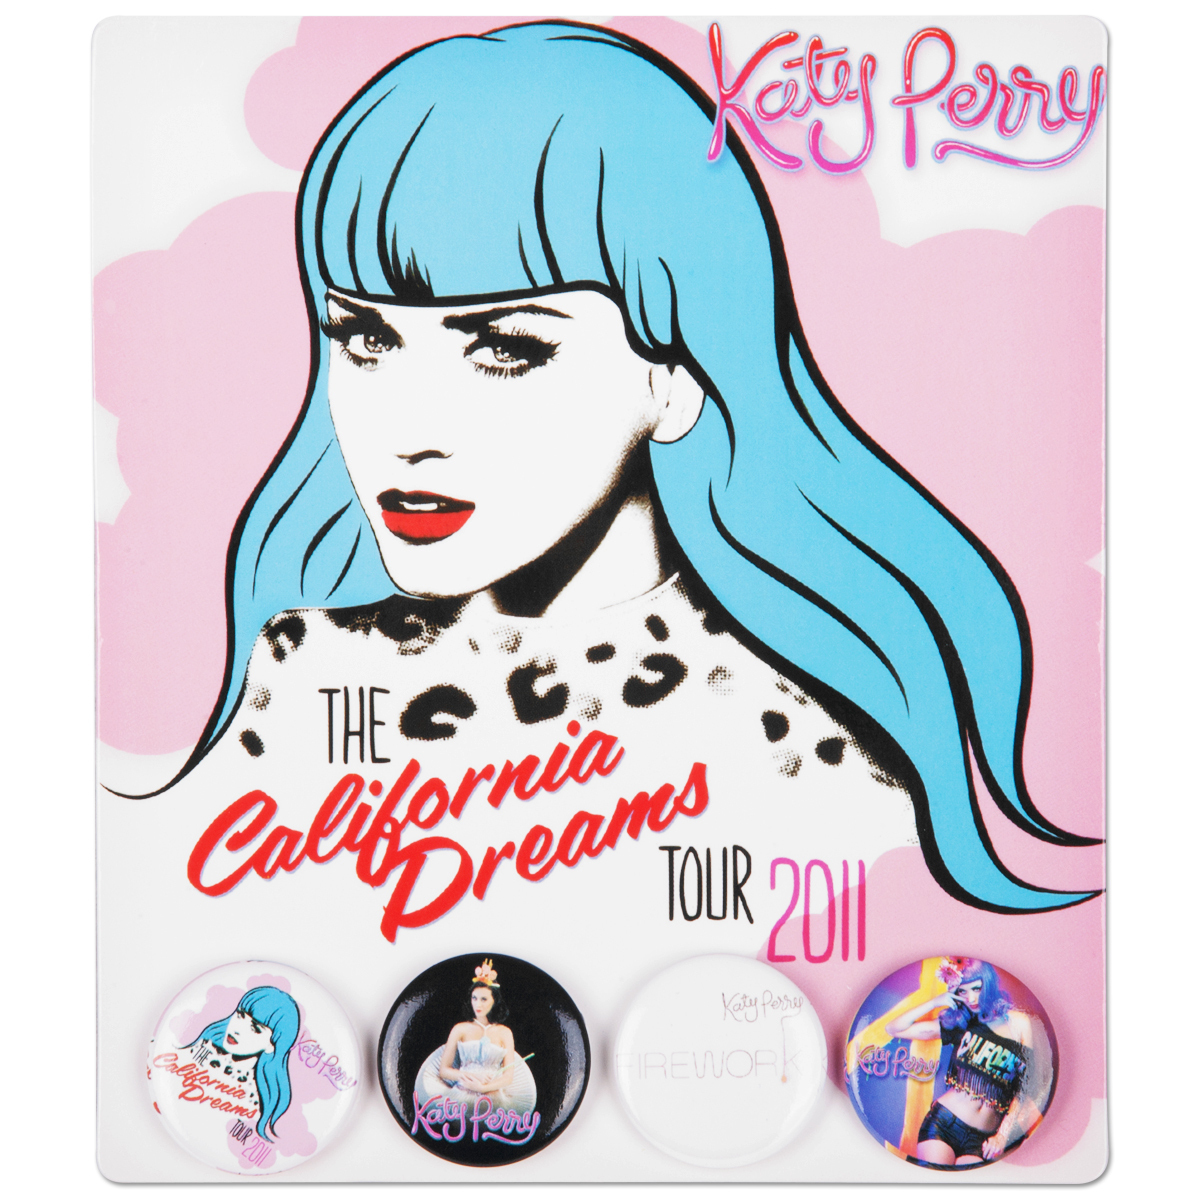 Katy Perry 2011 Tour Button Set